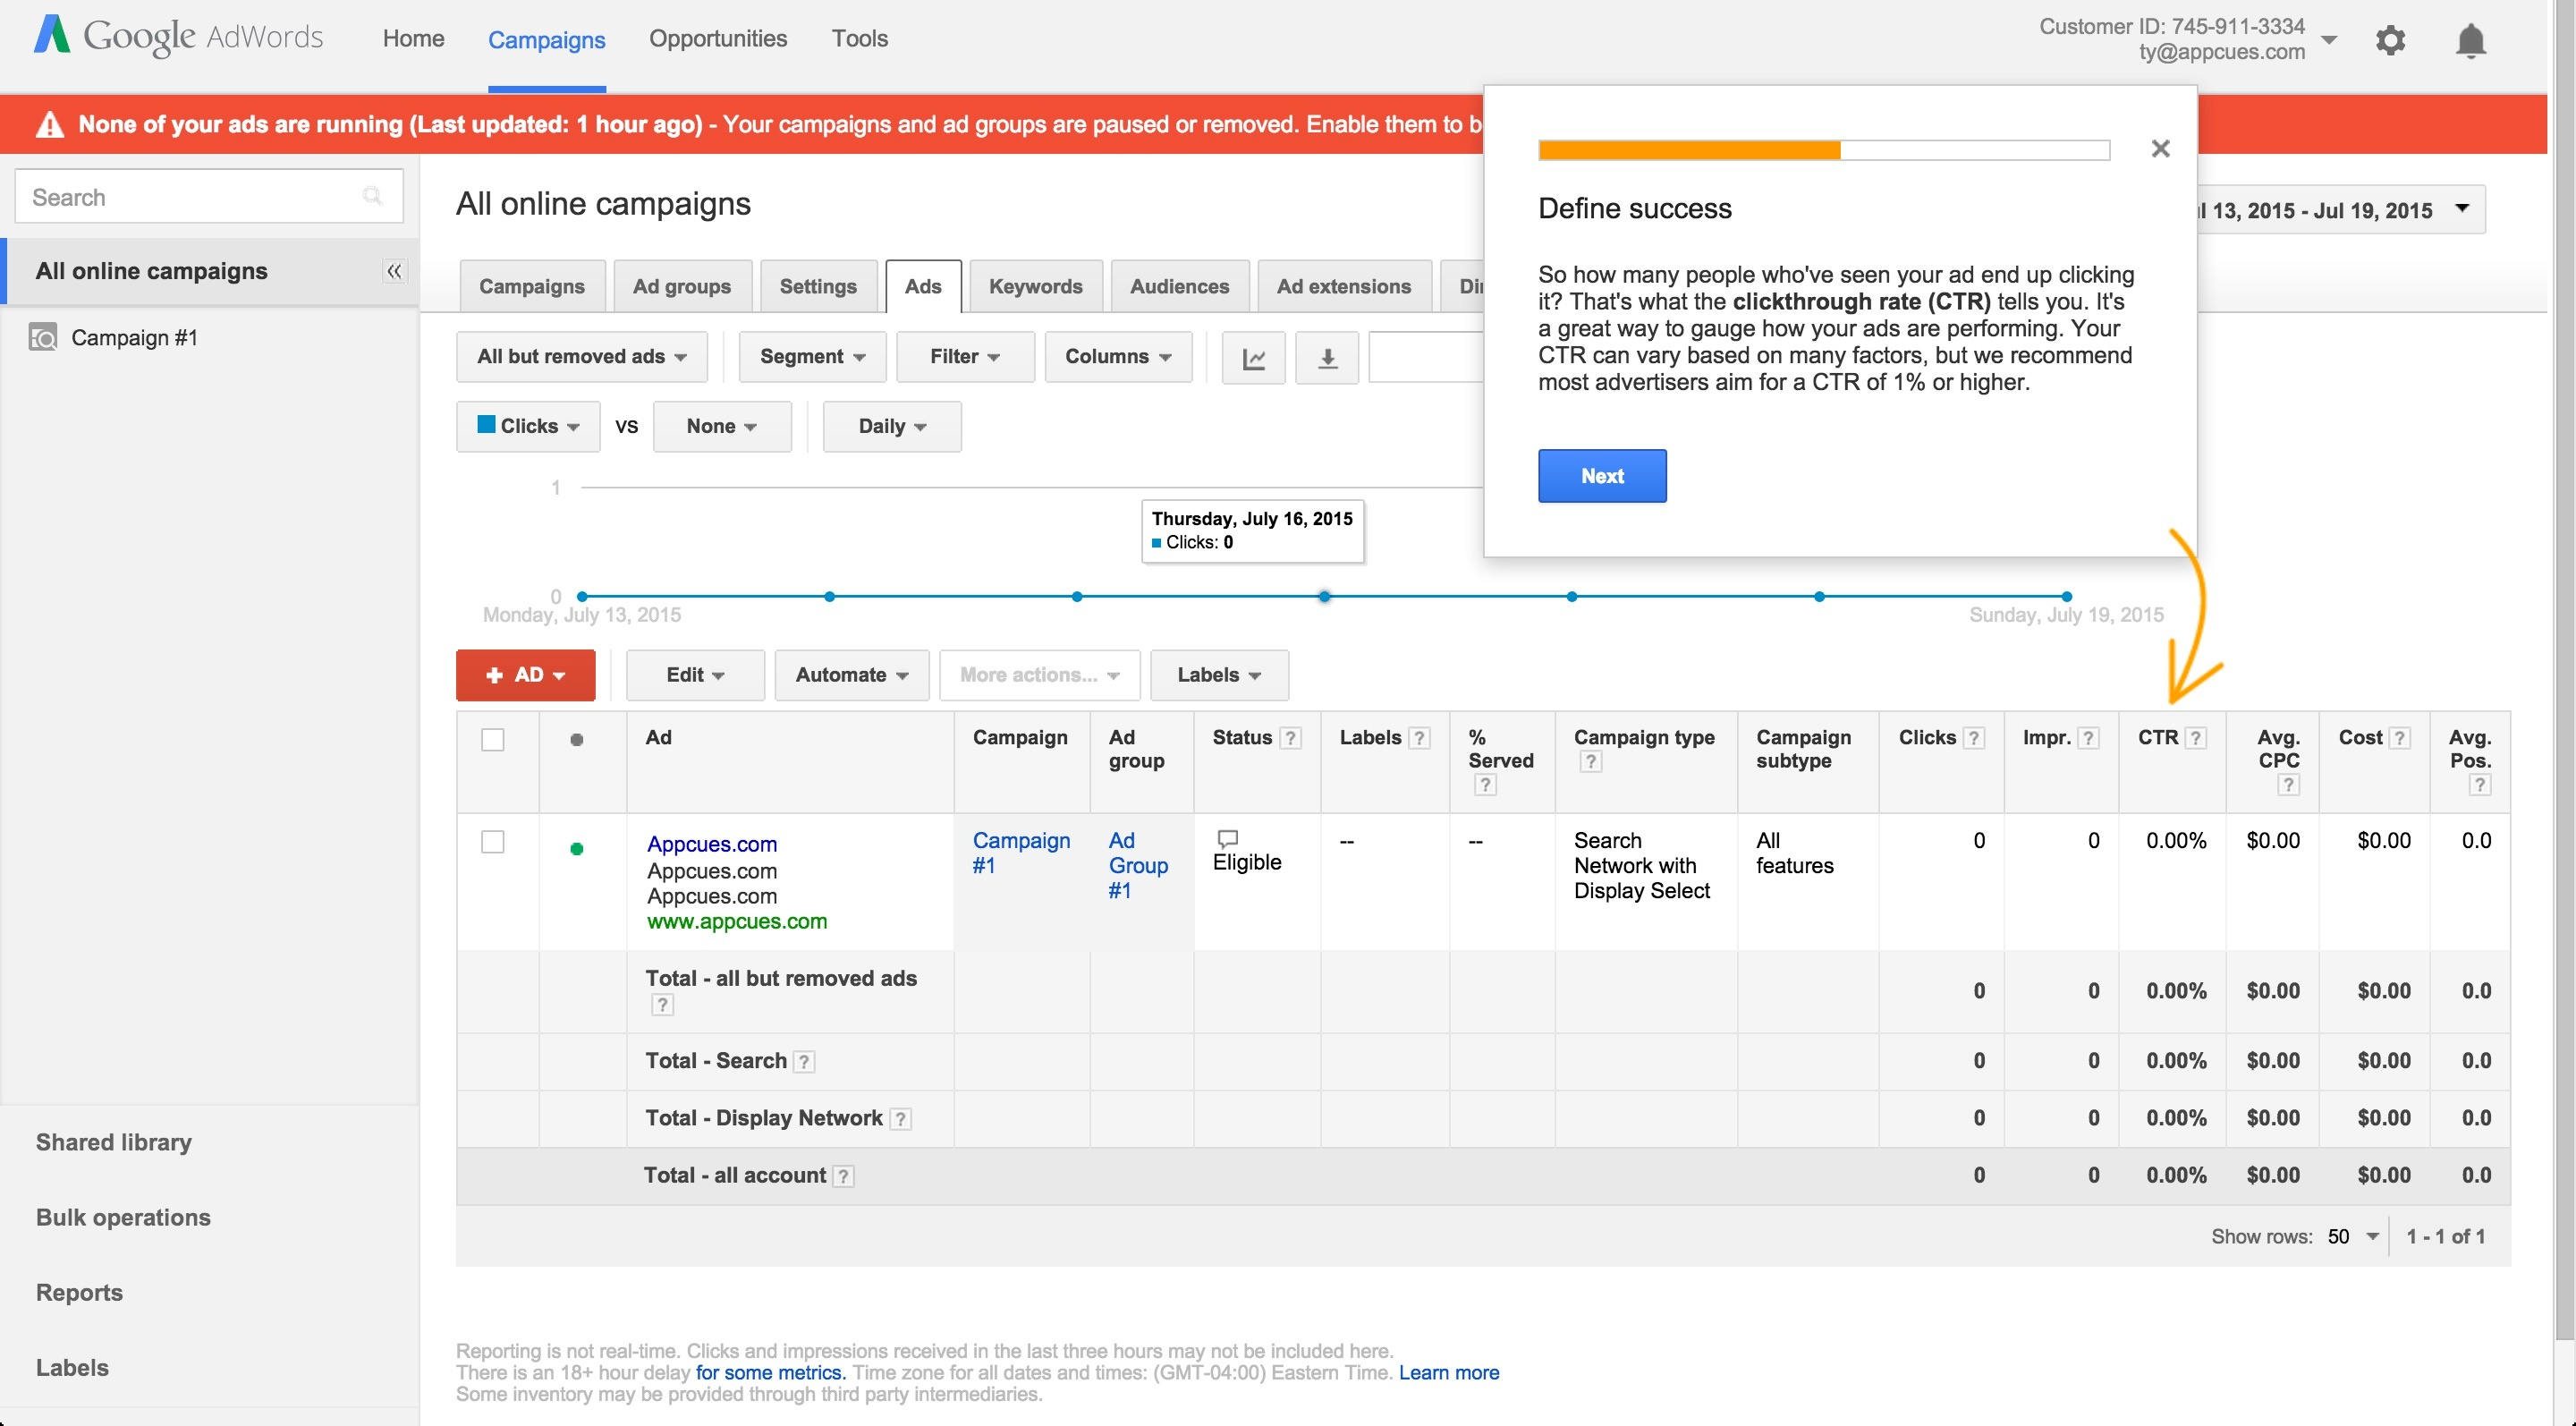 Adwords onboarding tour step 8